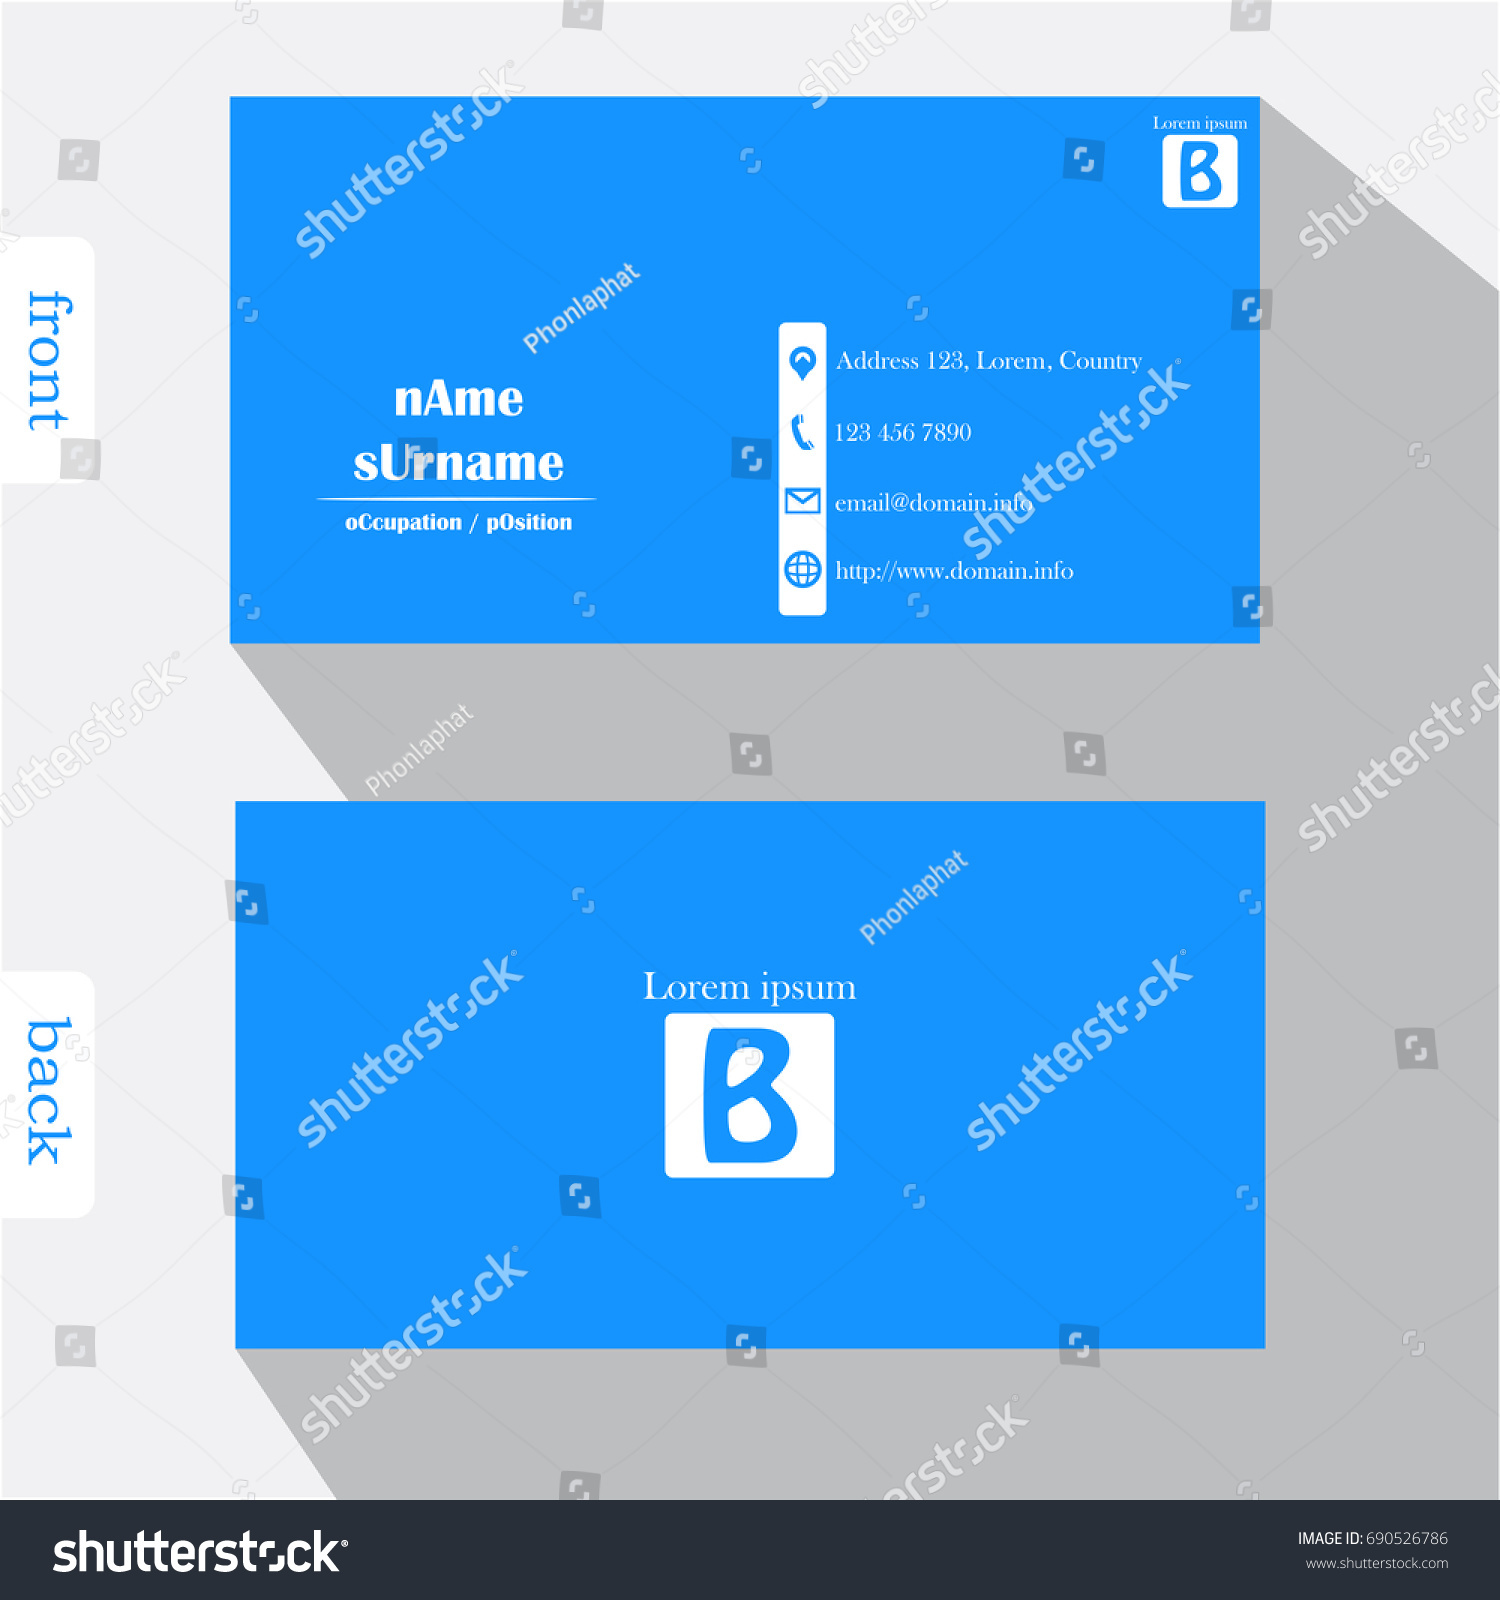 Electronic Business Card Templates Choice Image - Templates ...